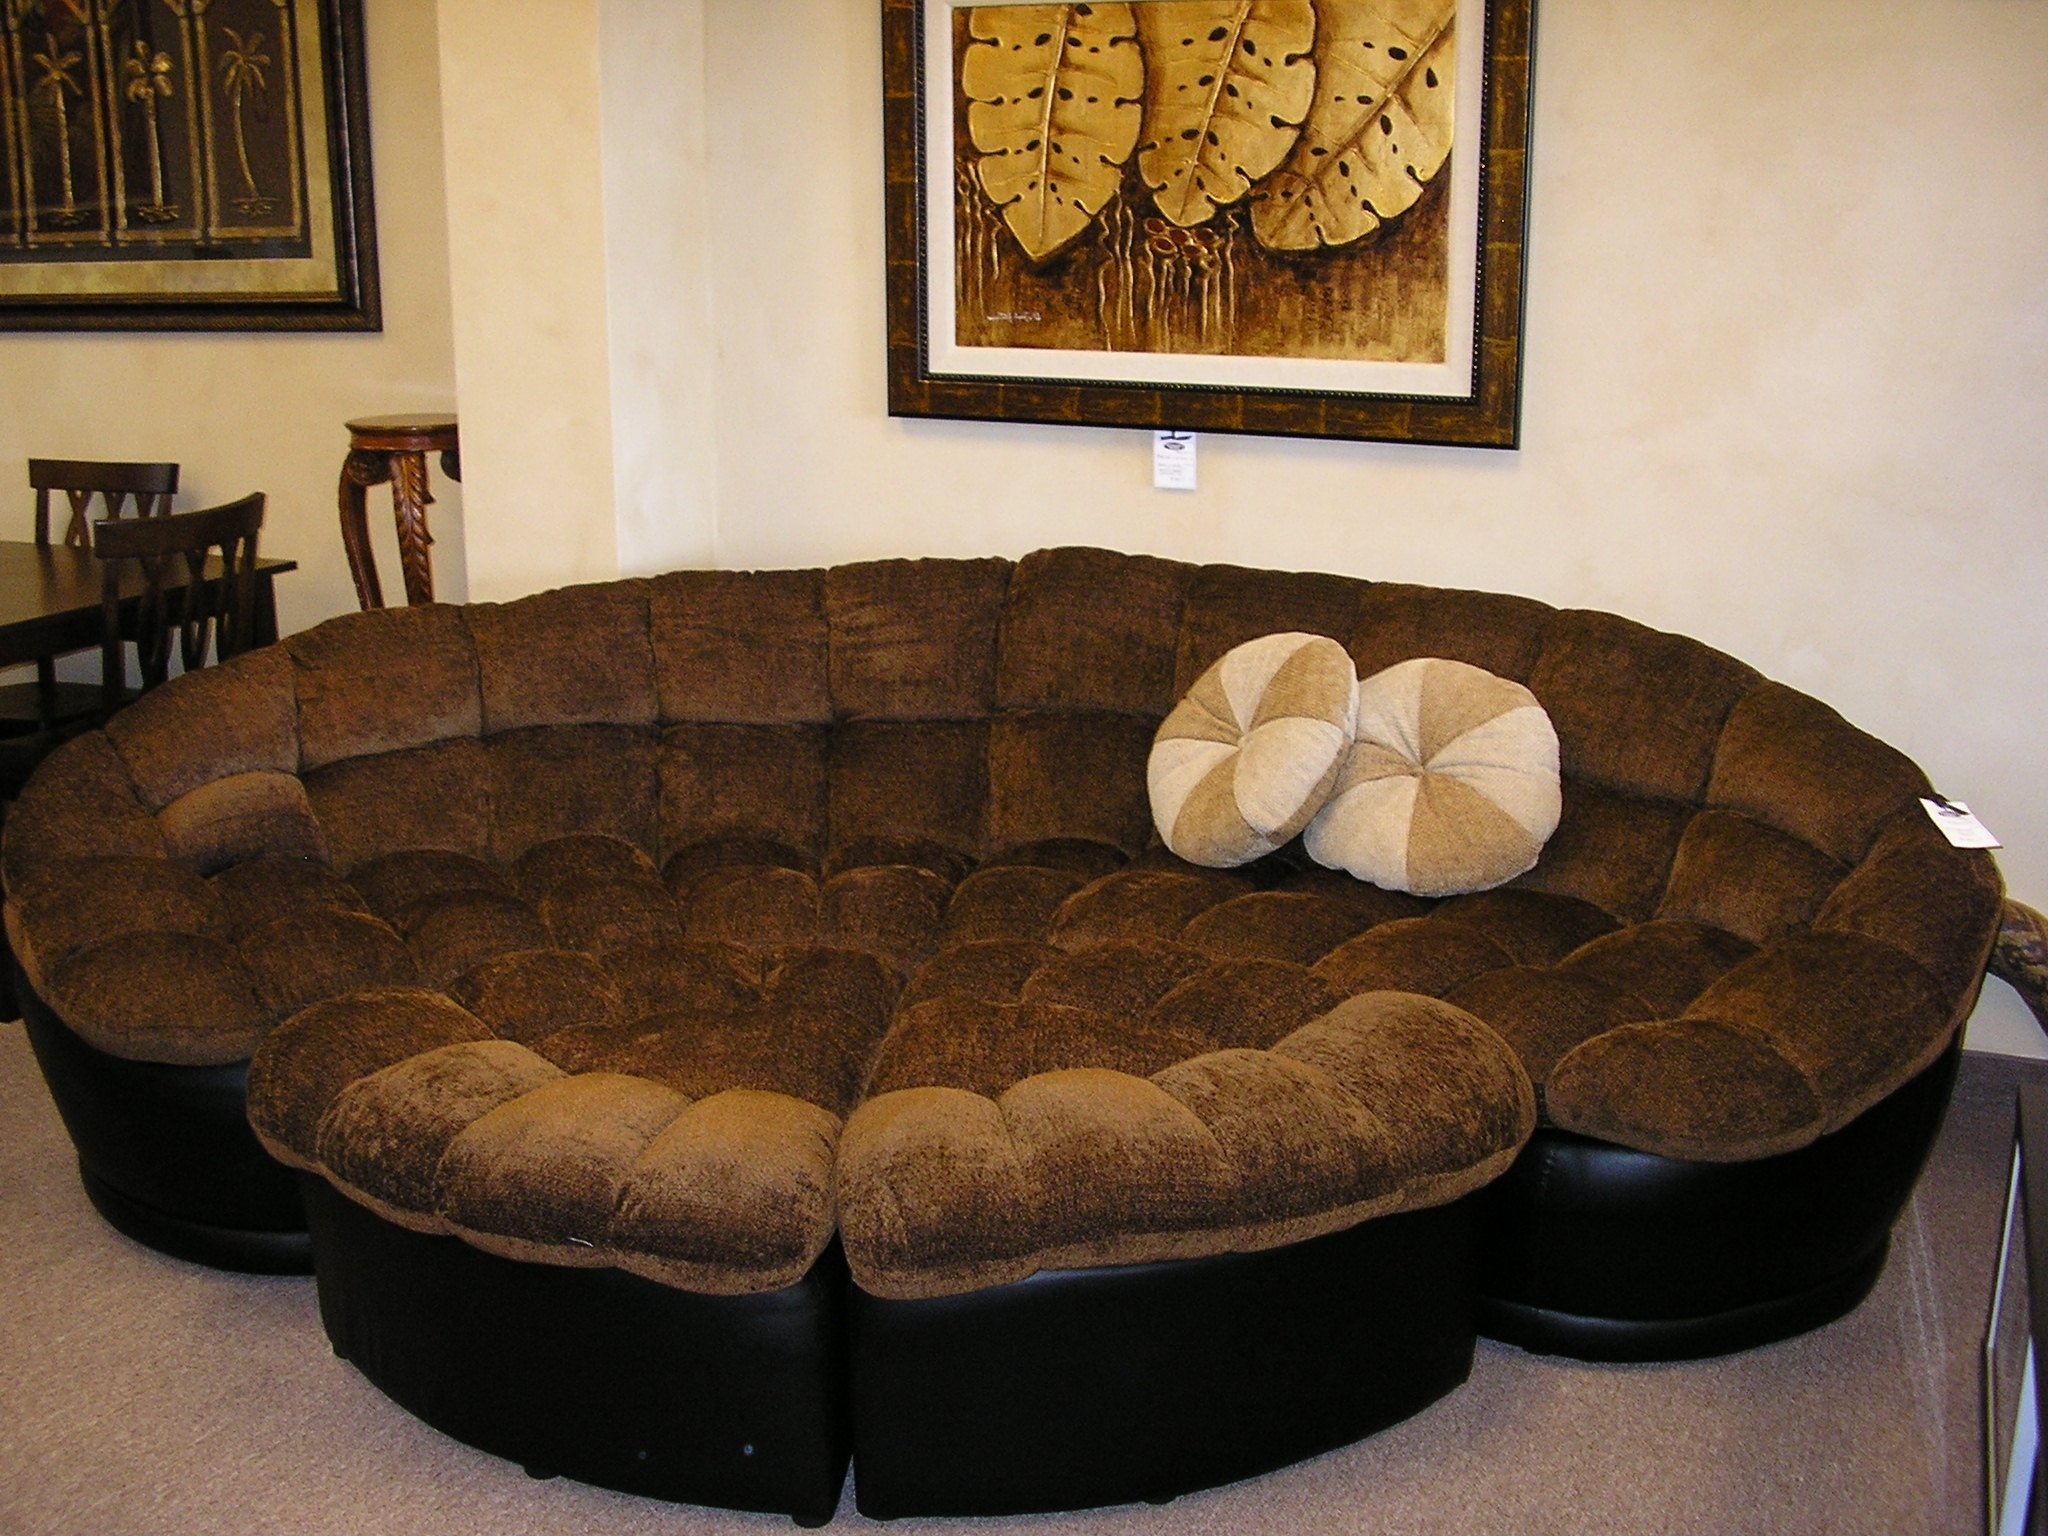 Most Popular Sectional Sofa Design: Beautiful Round Sectional Sofas Couches And Pertaining To Circular Sectional Sofas (View 15 of 20)